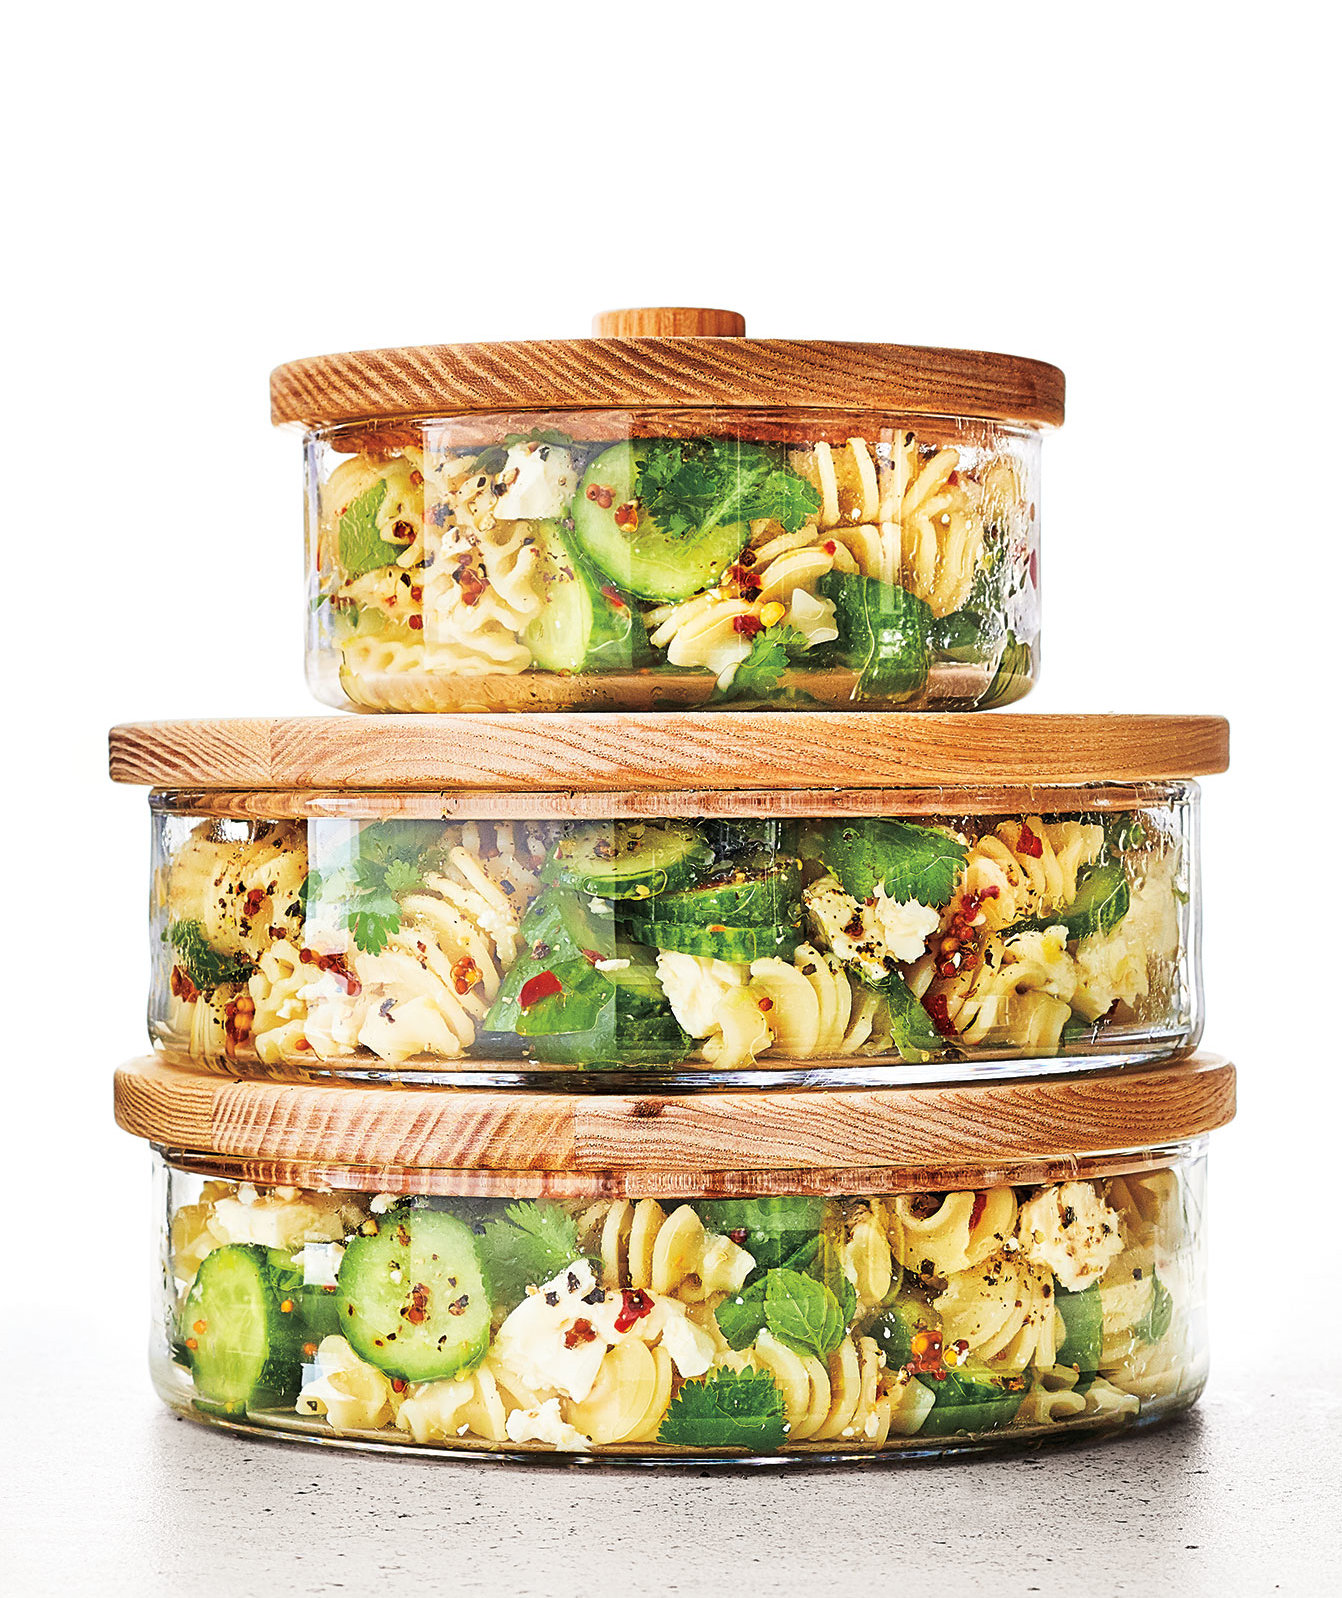 Lemony Cucumber-and-Herb Pasta Salad